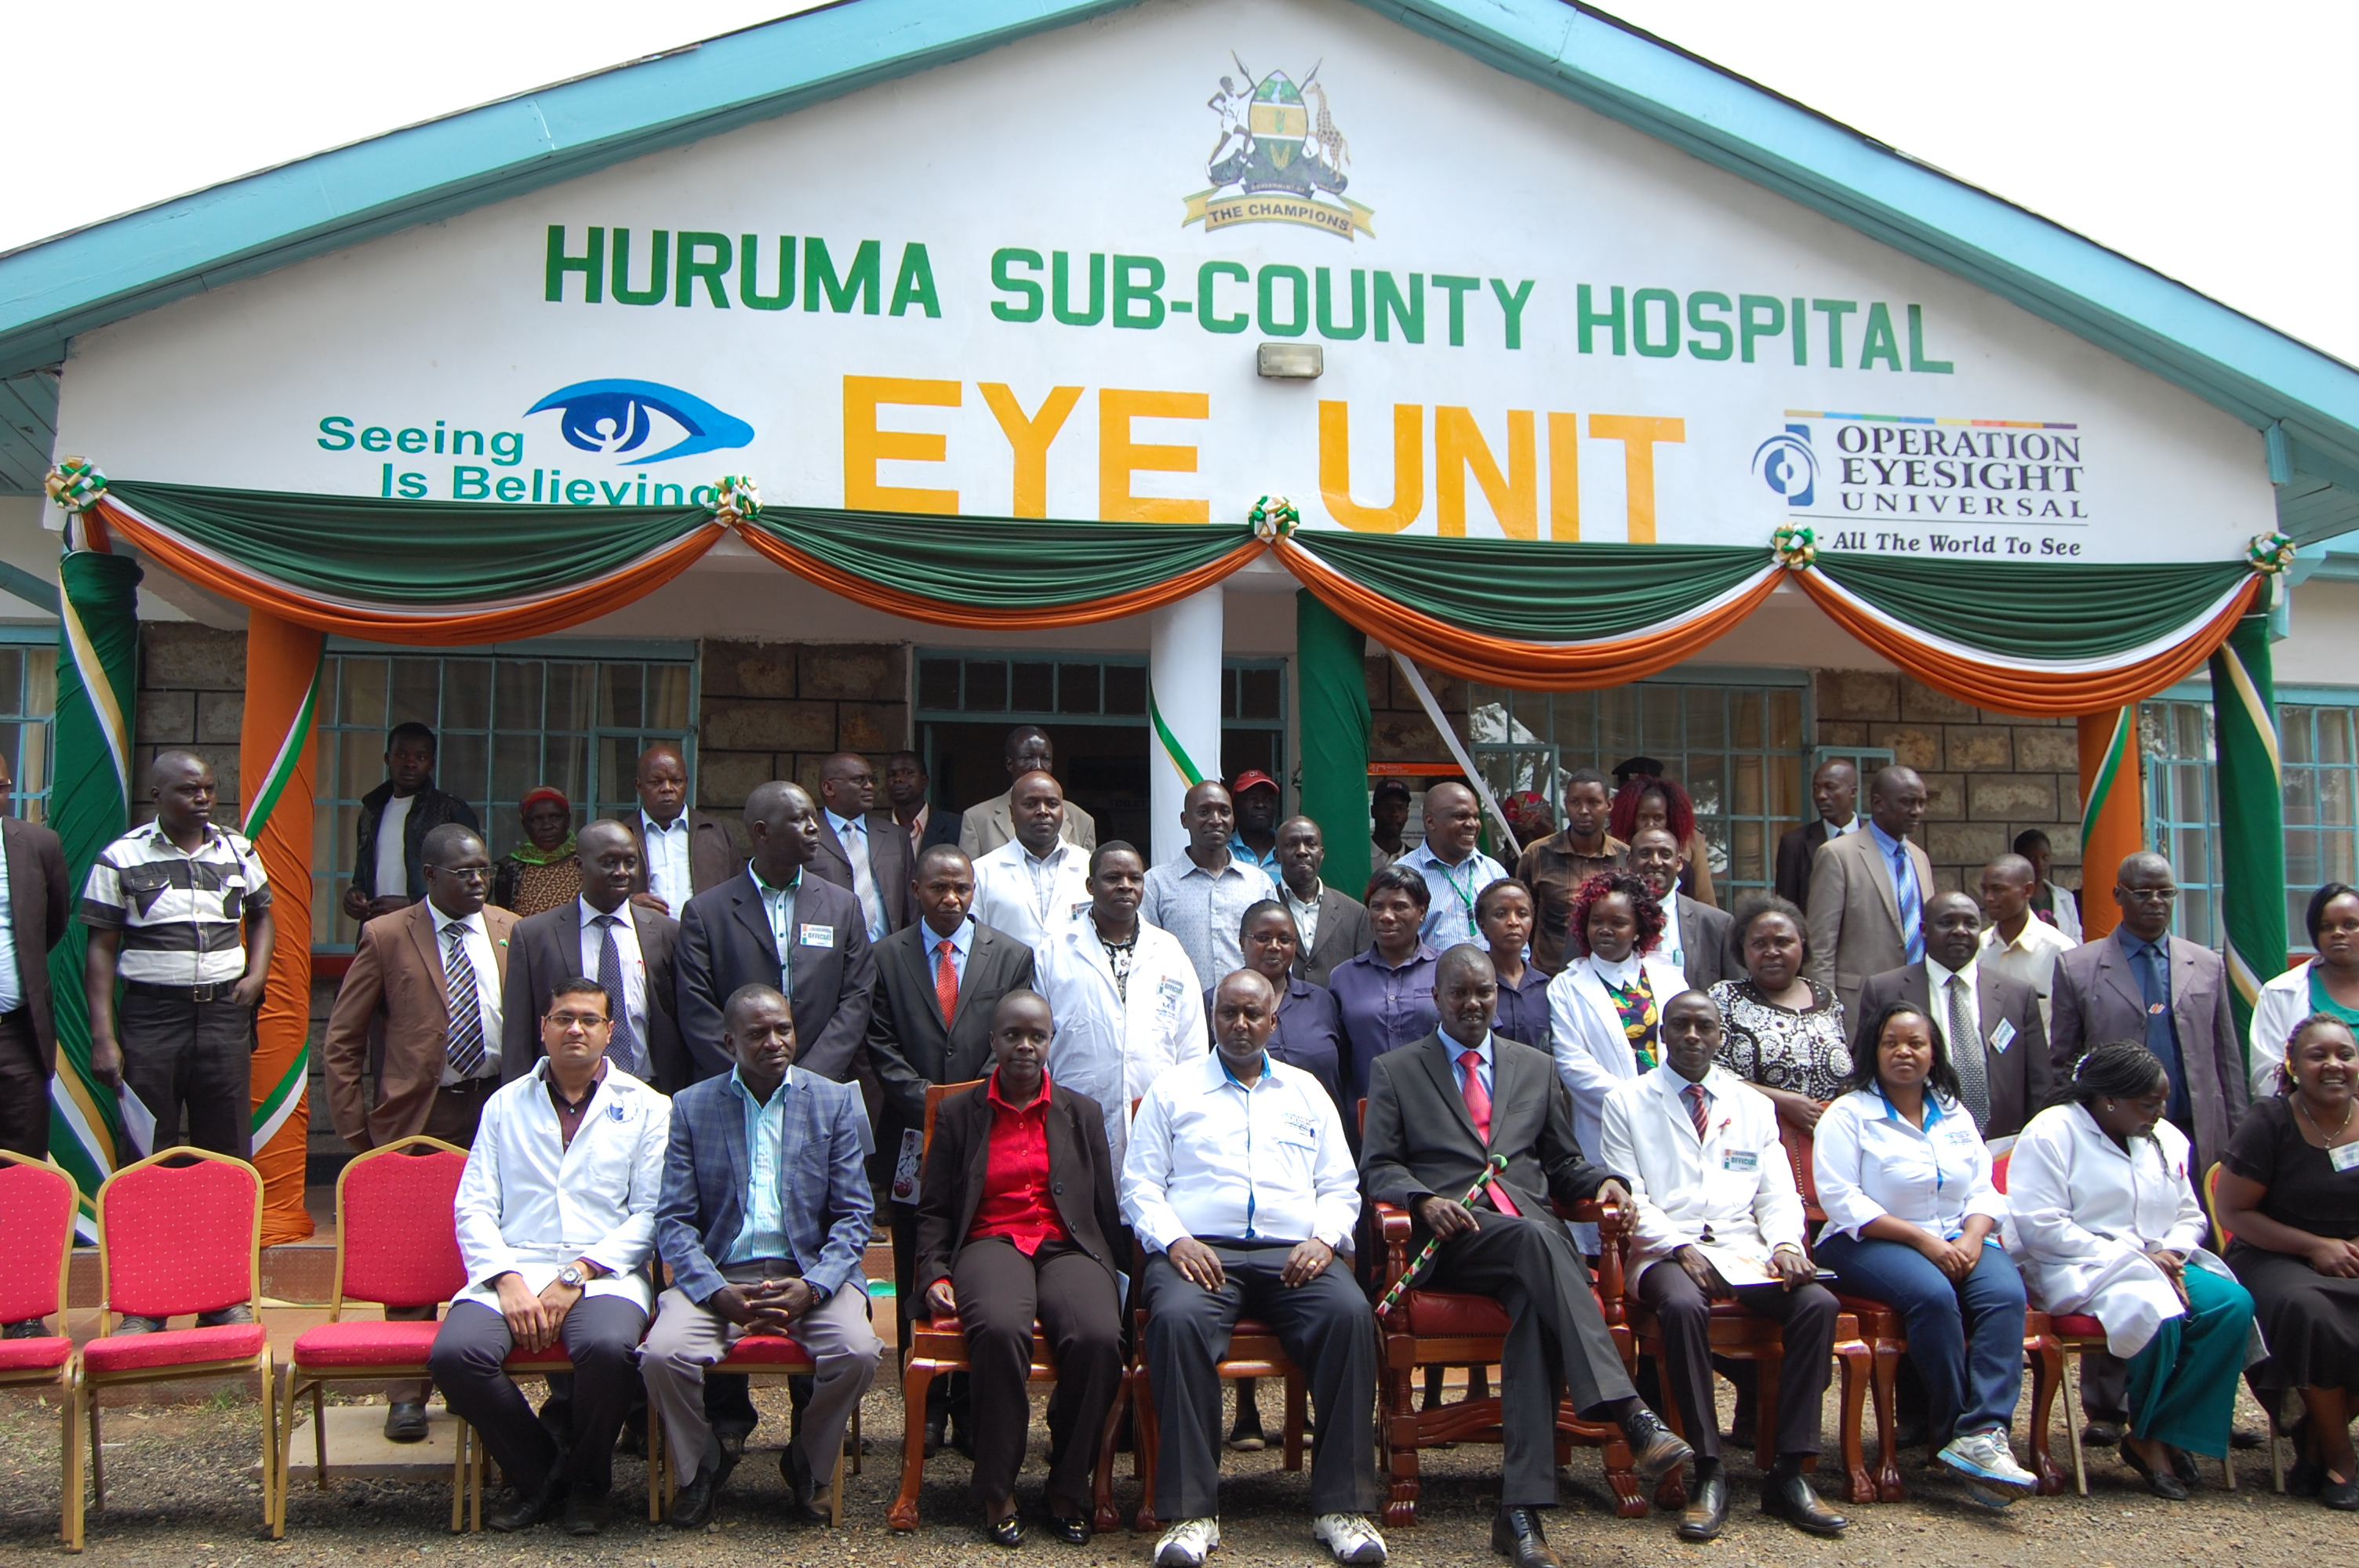 The new eye unit will provide sight-restoration and blindness prevention services for thousands of people in Uasin Gishu County, Kenya.